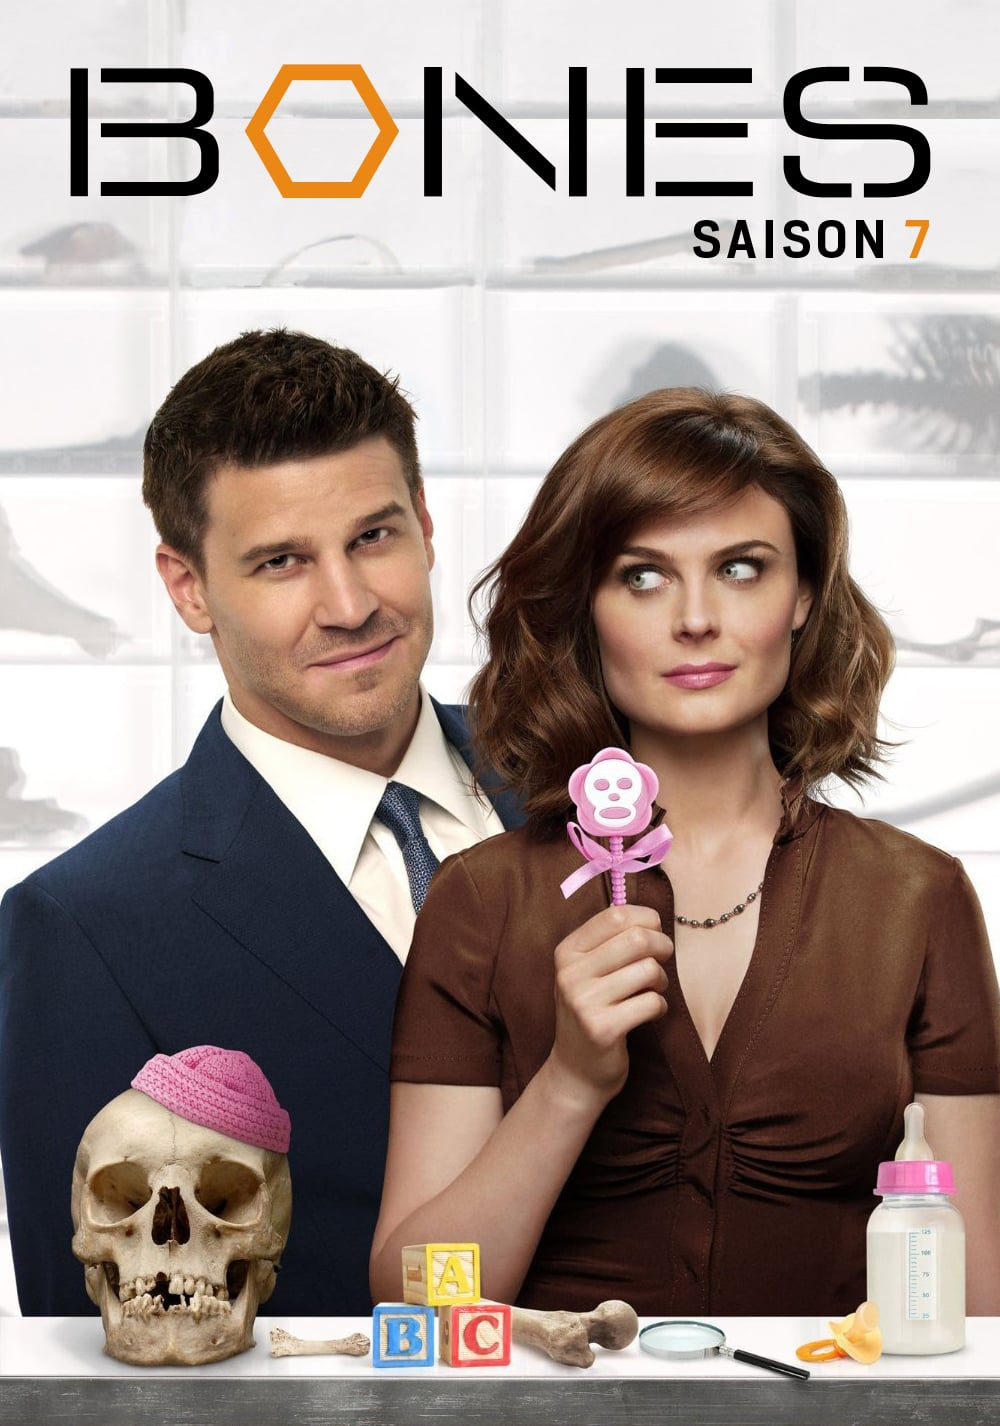 Image pure-43988-episode-1-season-1.jpg